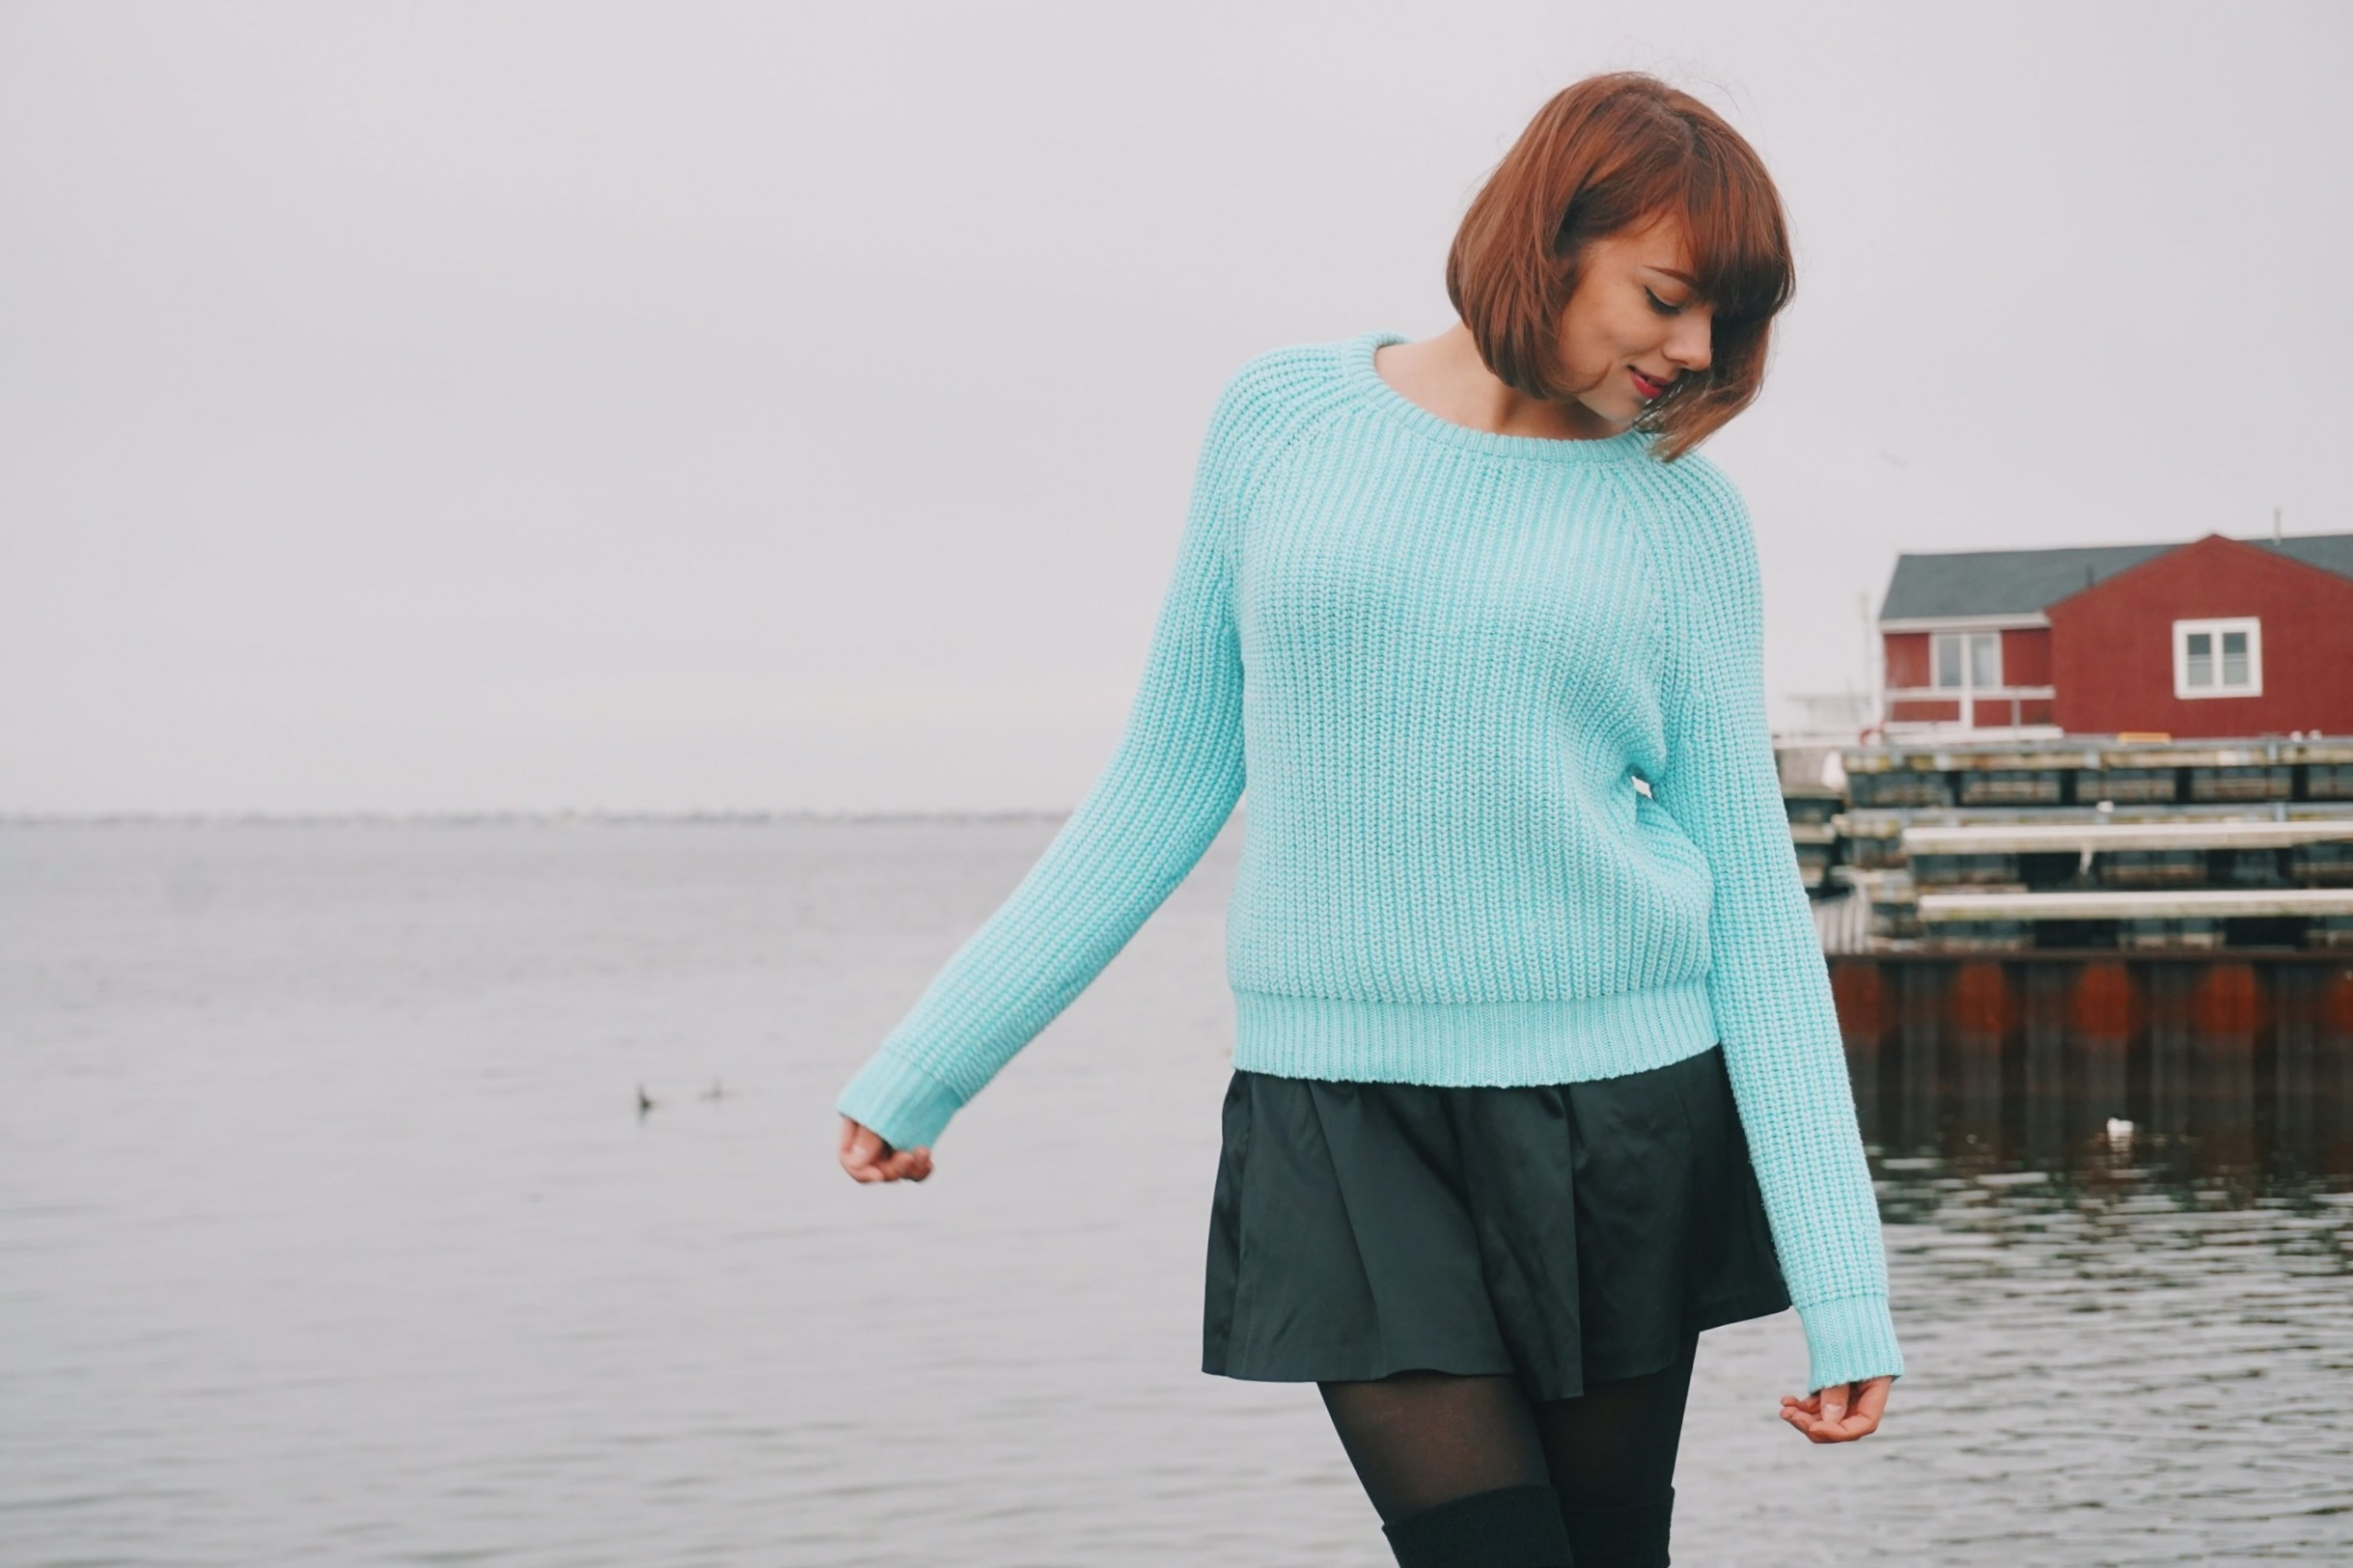 A blogger looking down in the photo. She is wearing a blue knitted sweater, black skirt, black tights and over the knee socks.